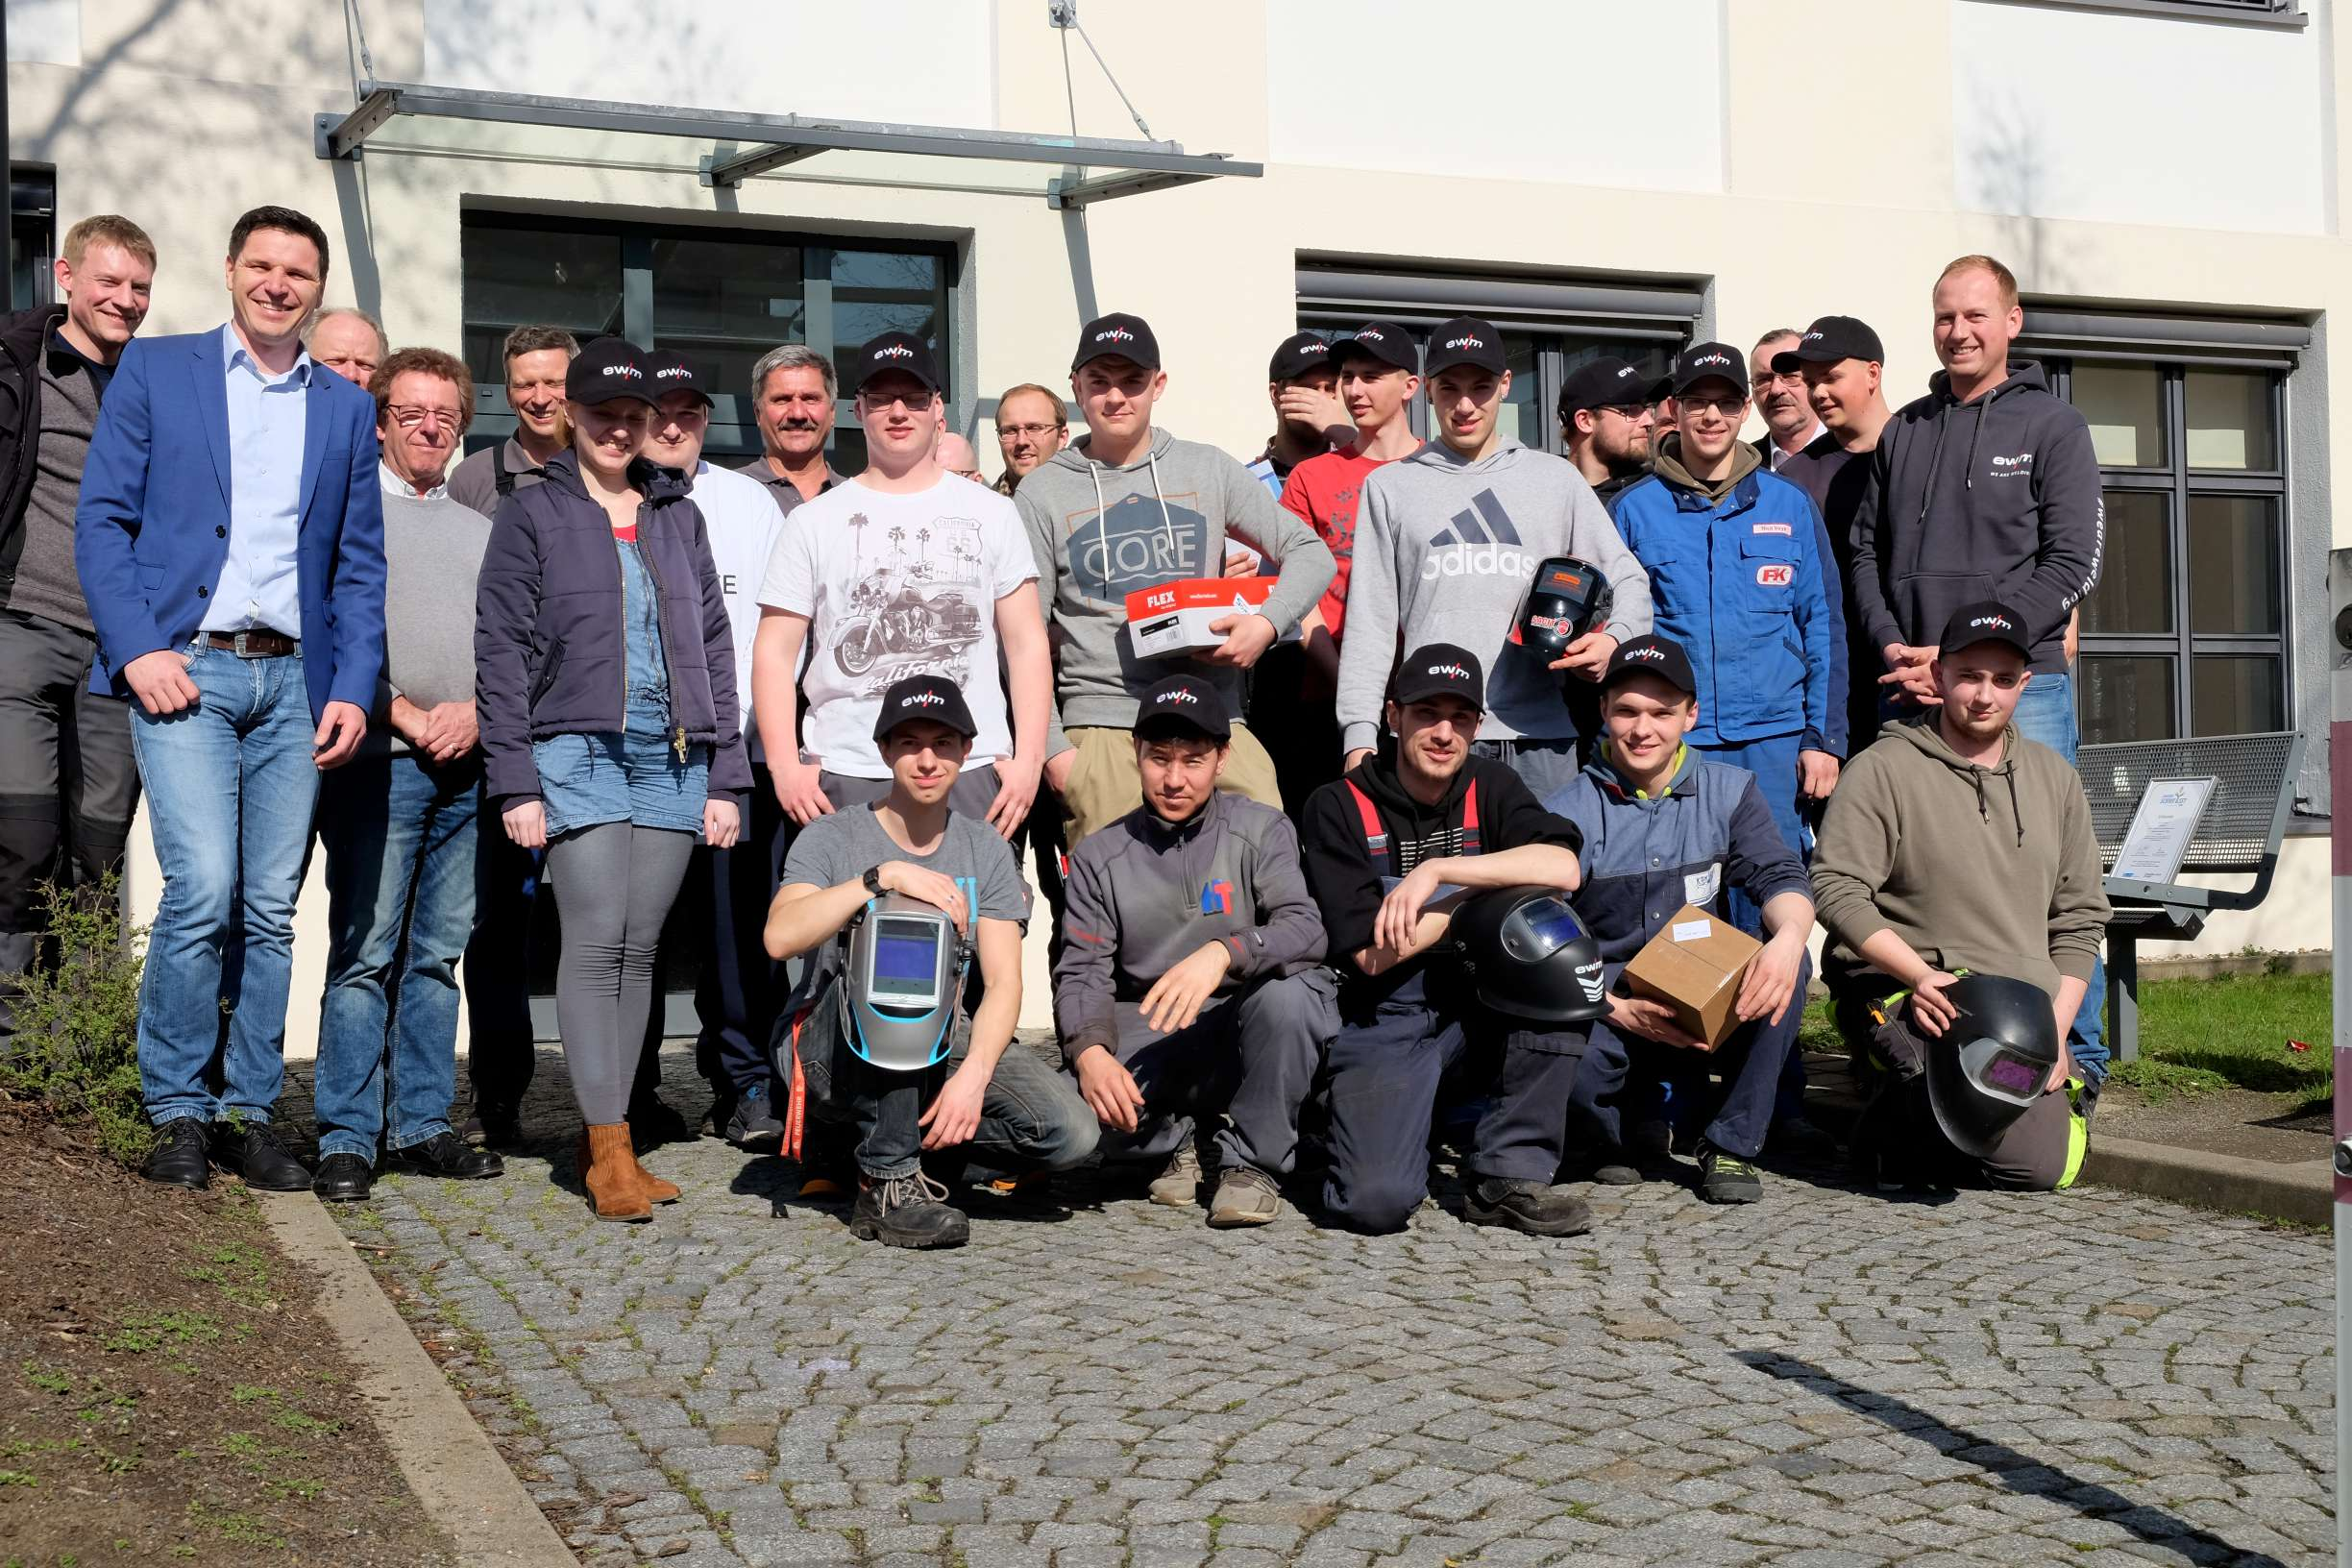 EWM AG to sponsor DVS Jugend Schweißt (Young Welder of the Year) competition